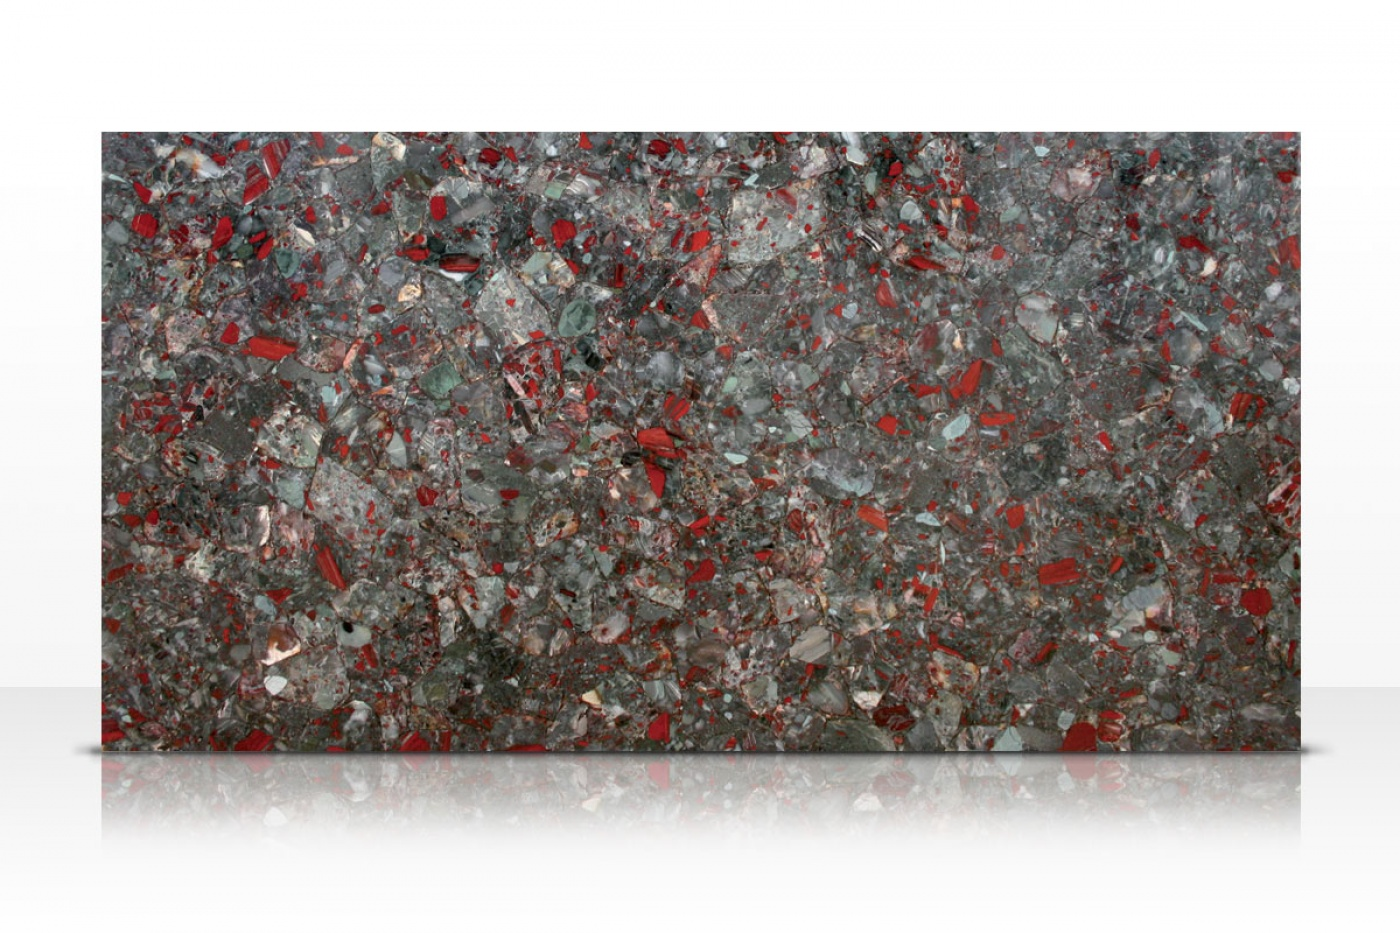 Bloodstone slab